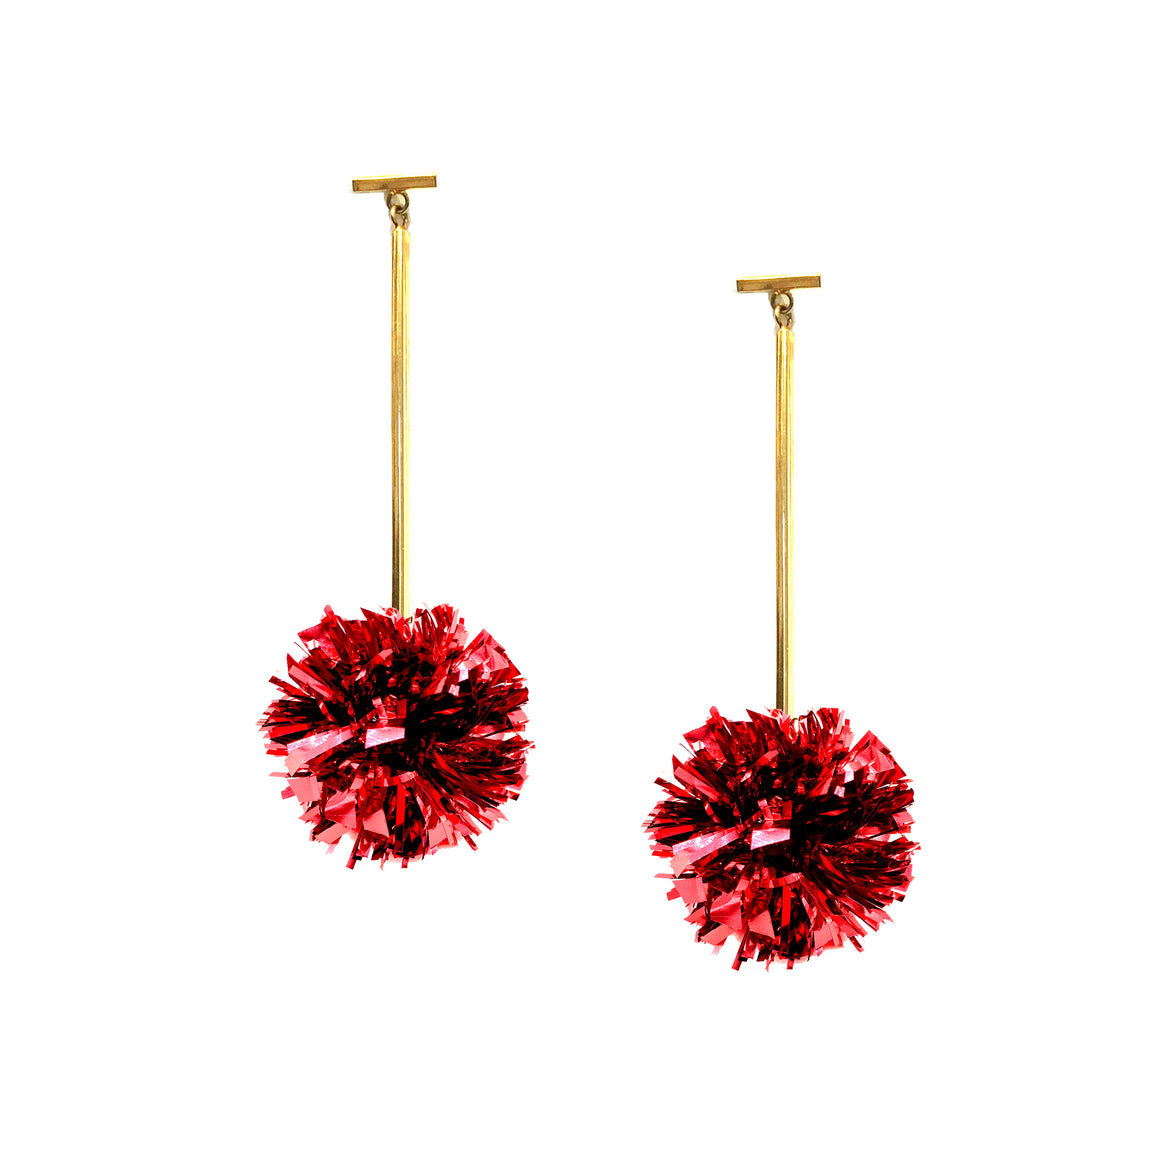 "Red 1"" Lurex Pom Pom T Bar Earrings, Earrings, Tuleste, Tuleste"